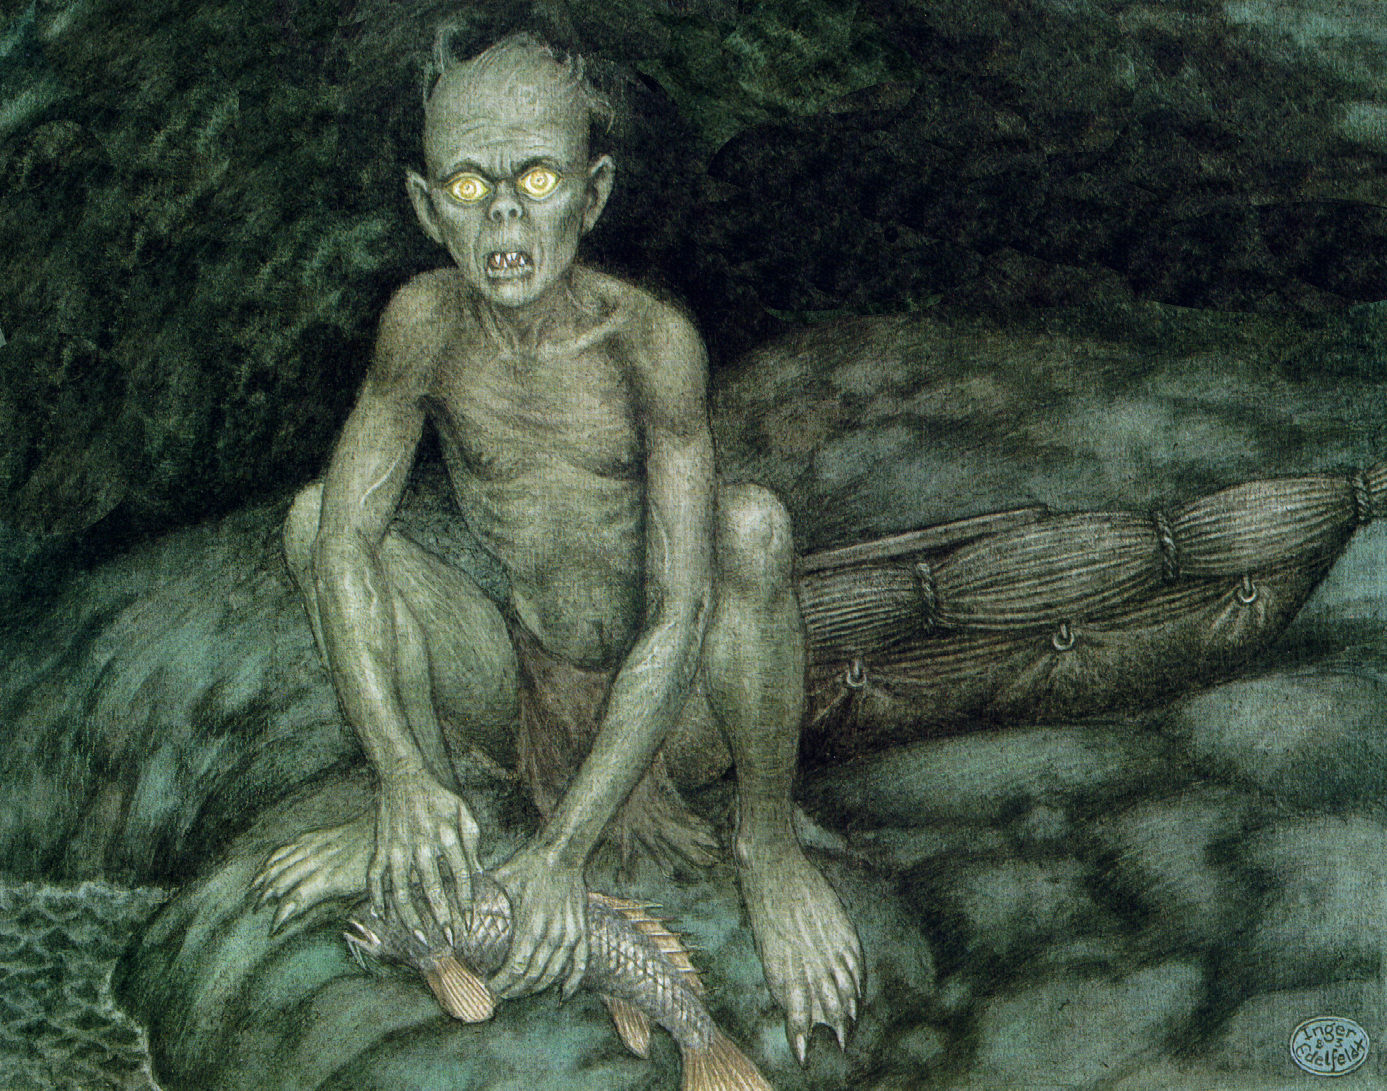 The legendary Golem: Persecuted Jews create an artificial monster to protect themselves from their enemies.